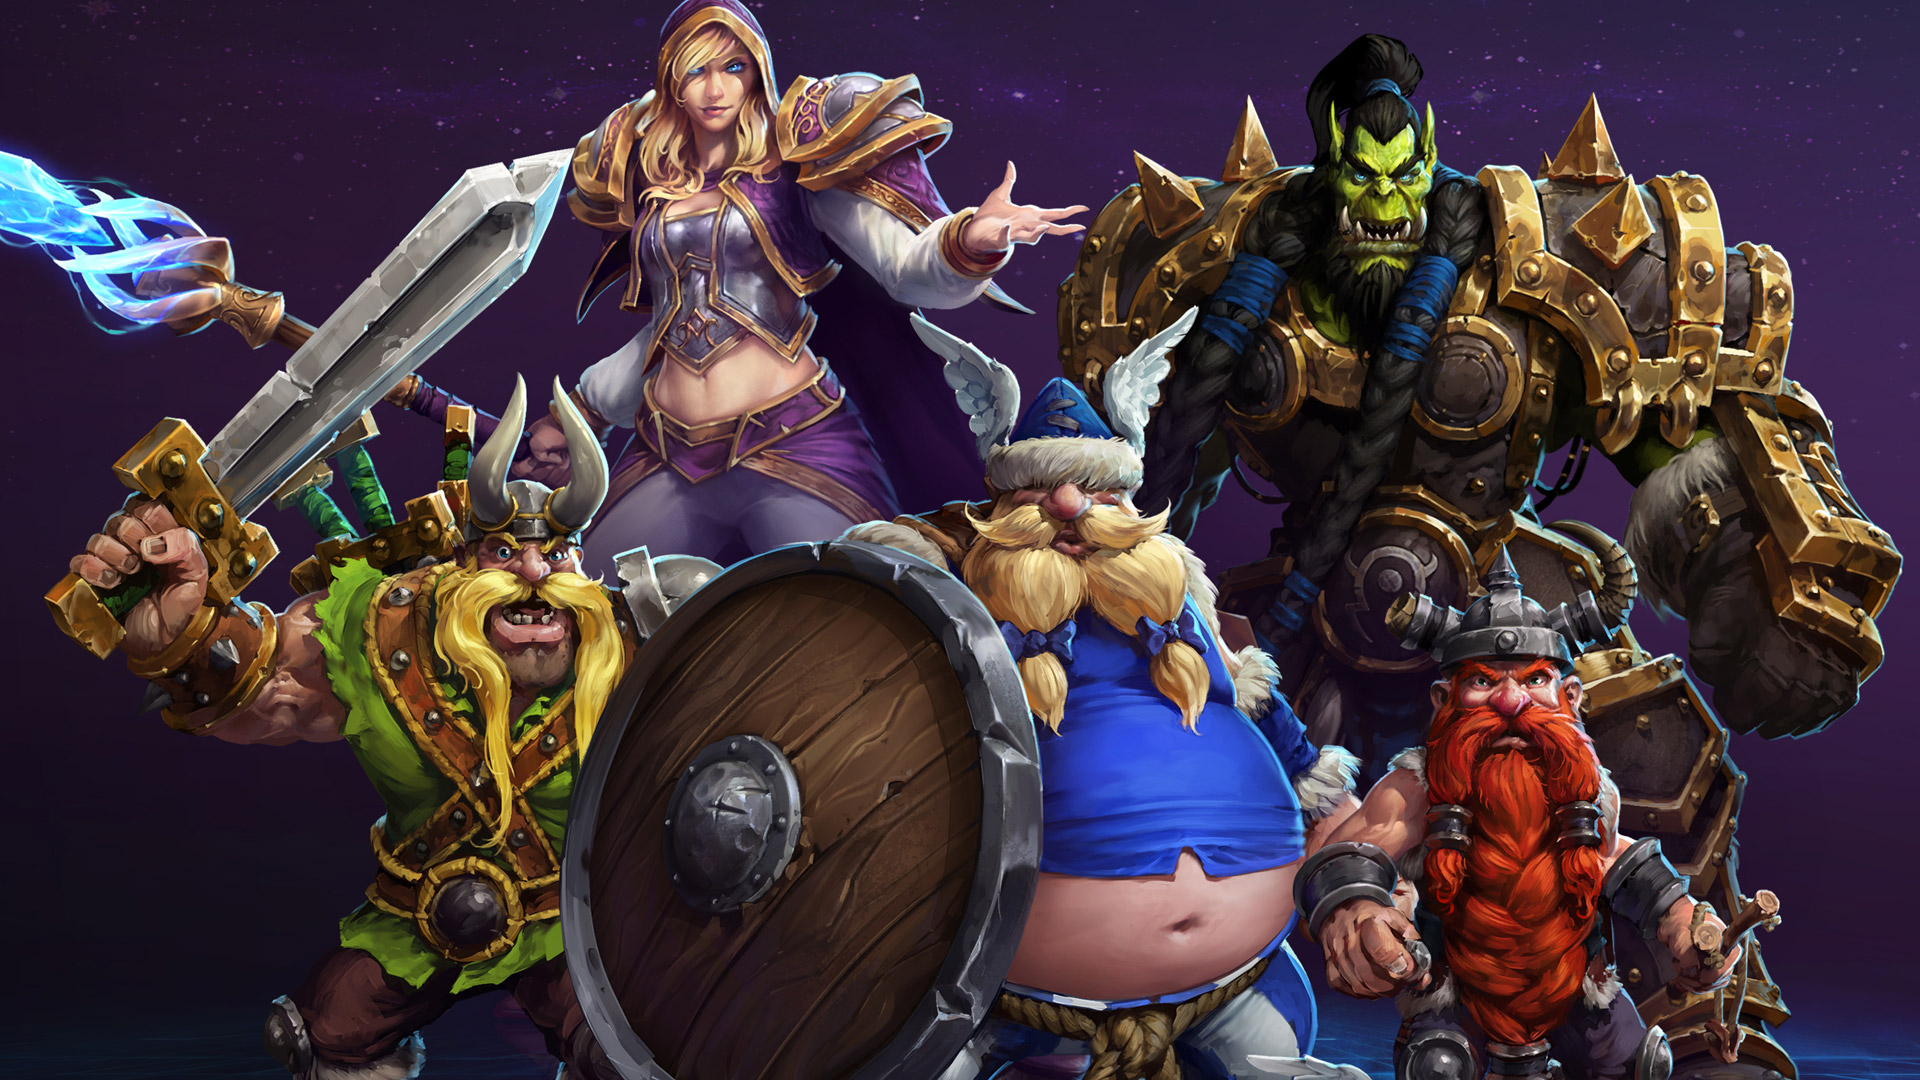 Free Heroes of the Storm Wallpaper in 1920x1080